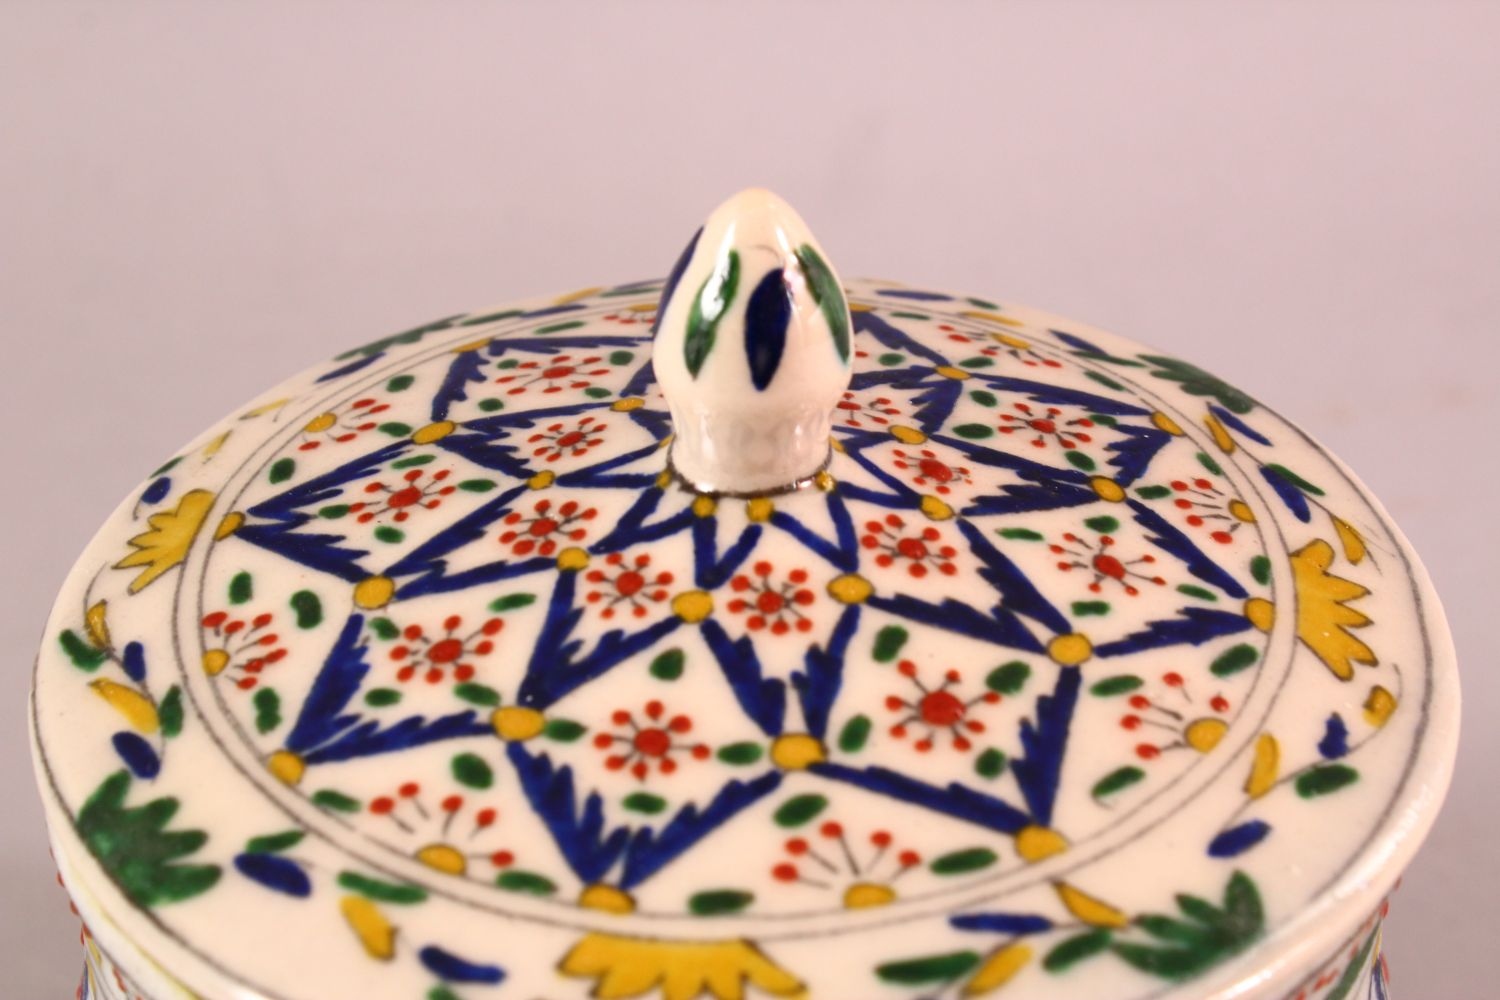 A TURKISH OTTOMAN DECORATED POTTERY BOWL & COVER, 13.5CM - Image 3 of 5